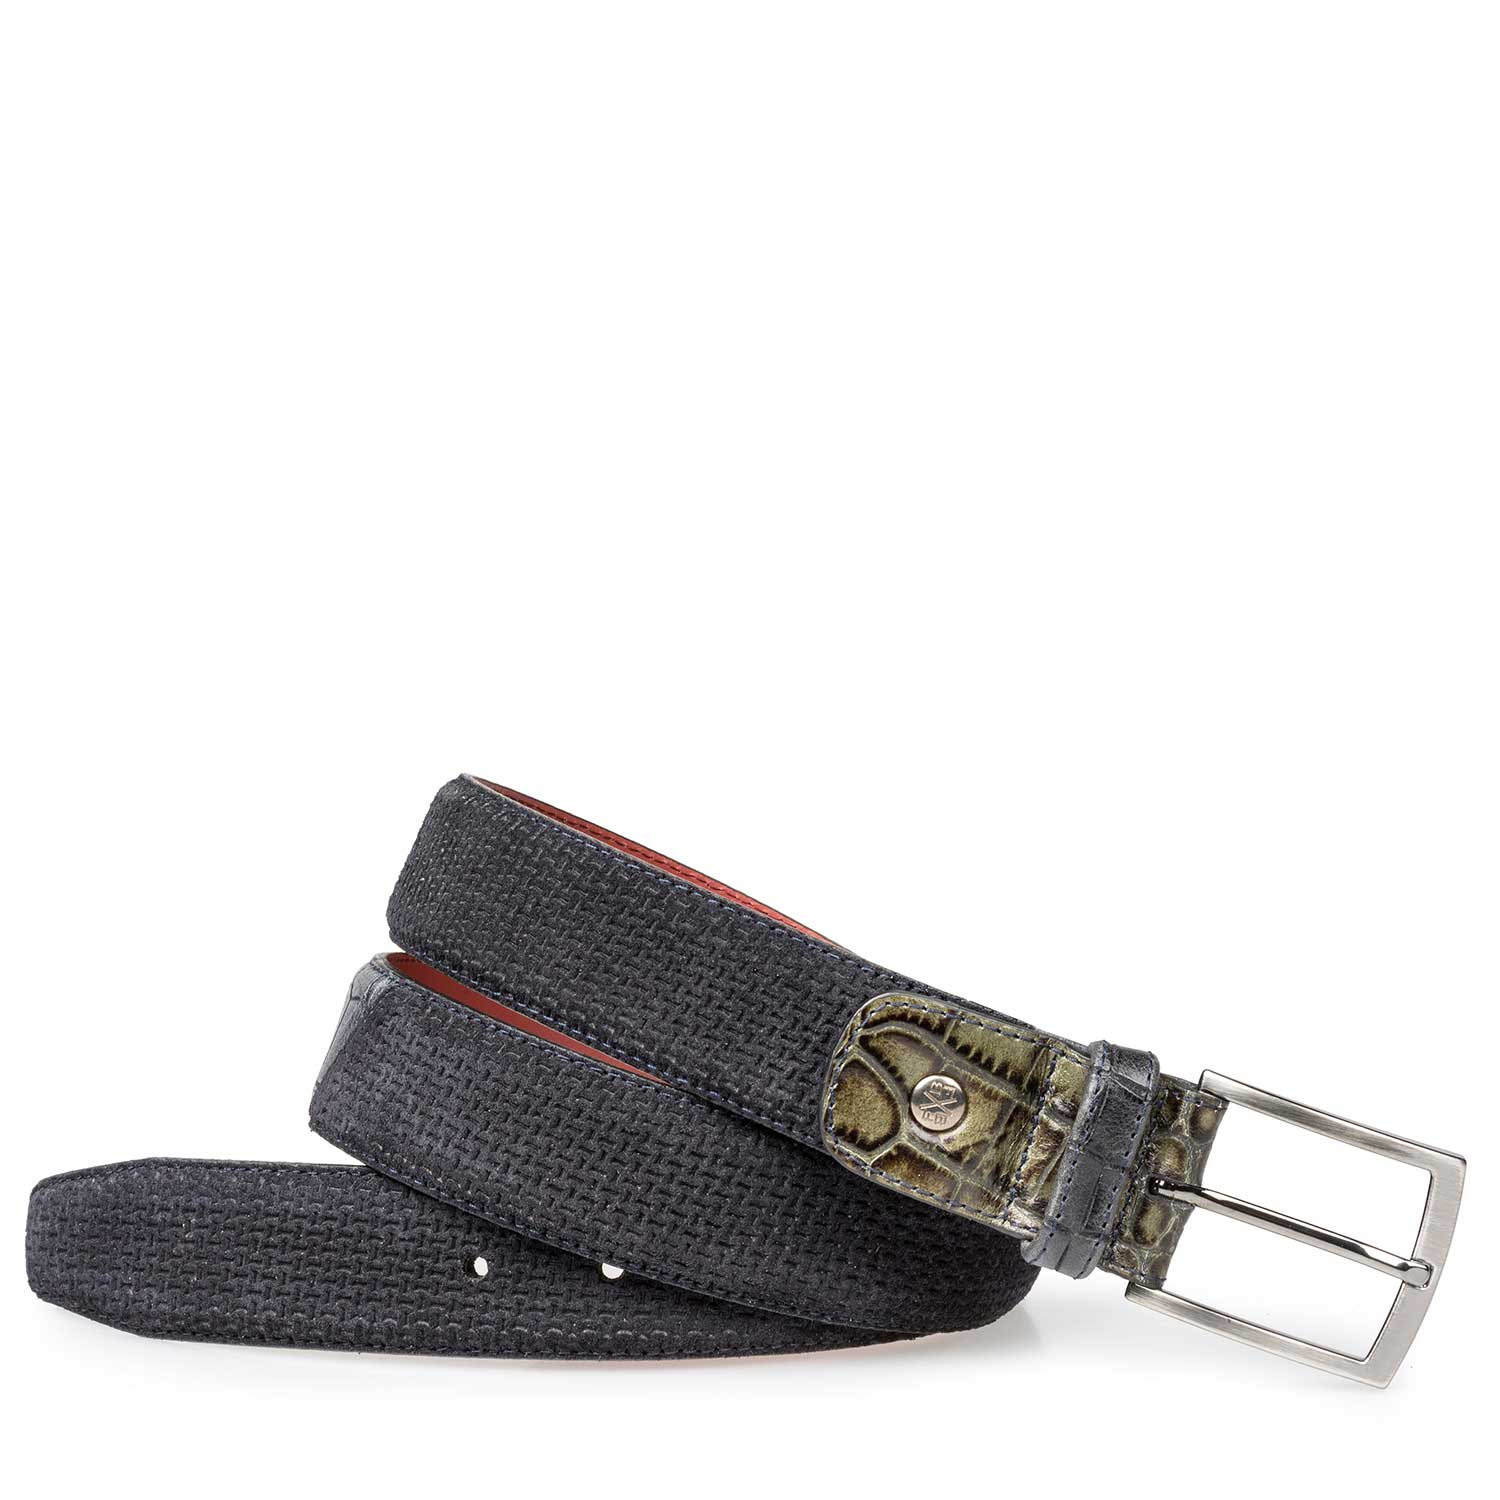 75188/05 - Blue calf's suede leather belt with structural pattern